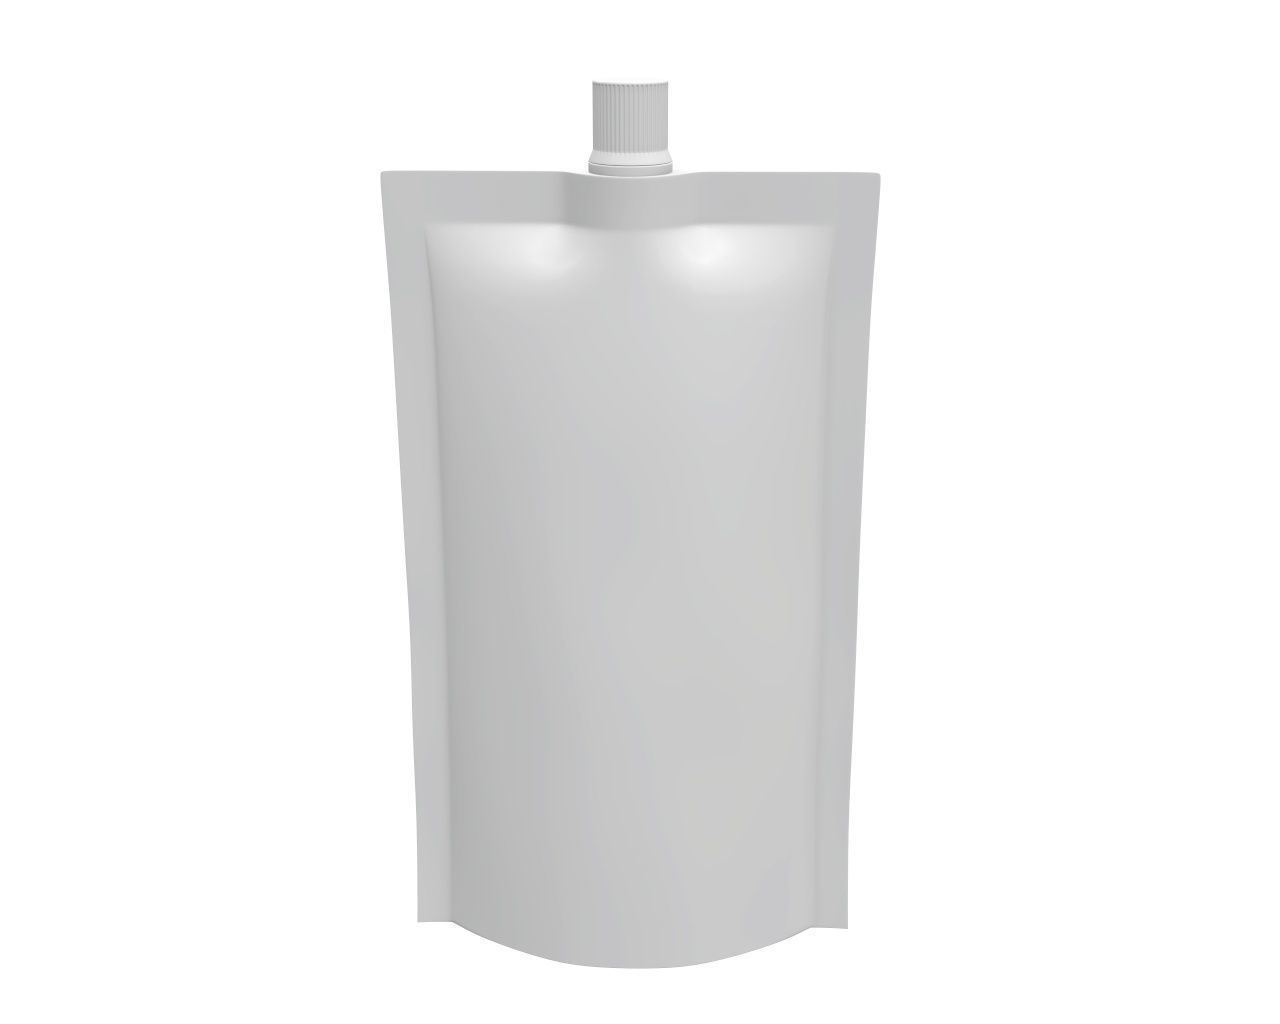 Blank Pouch Bag With Top Spout Lid Mock Up 05